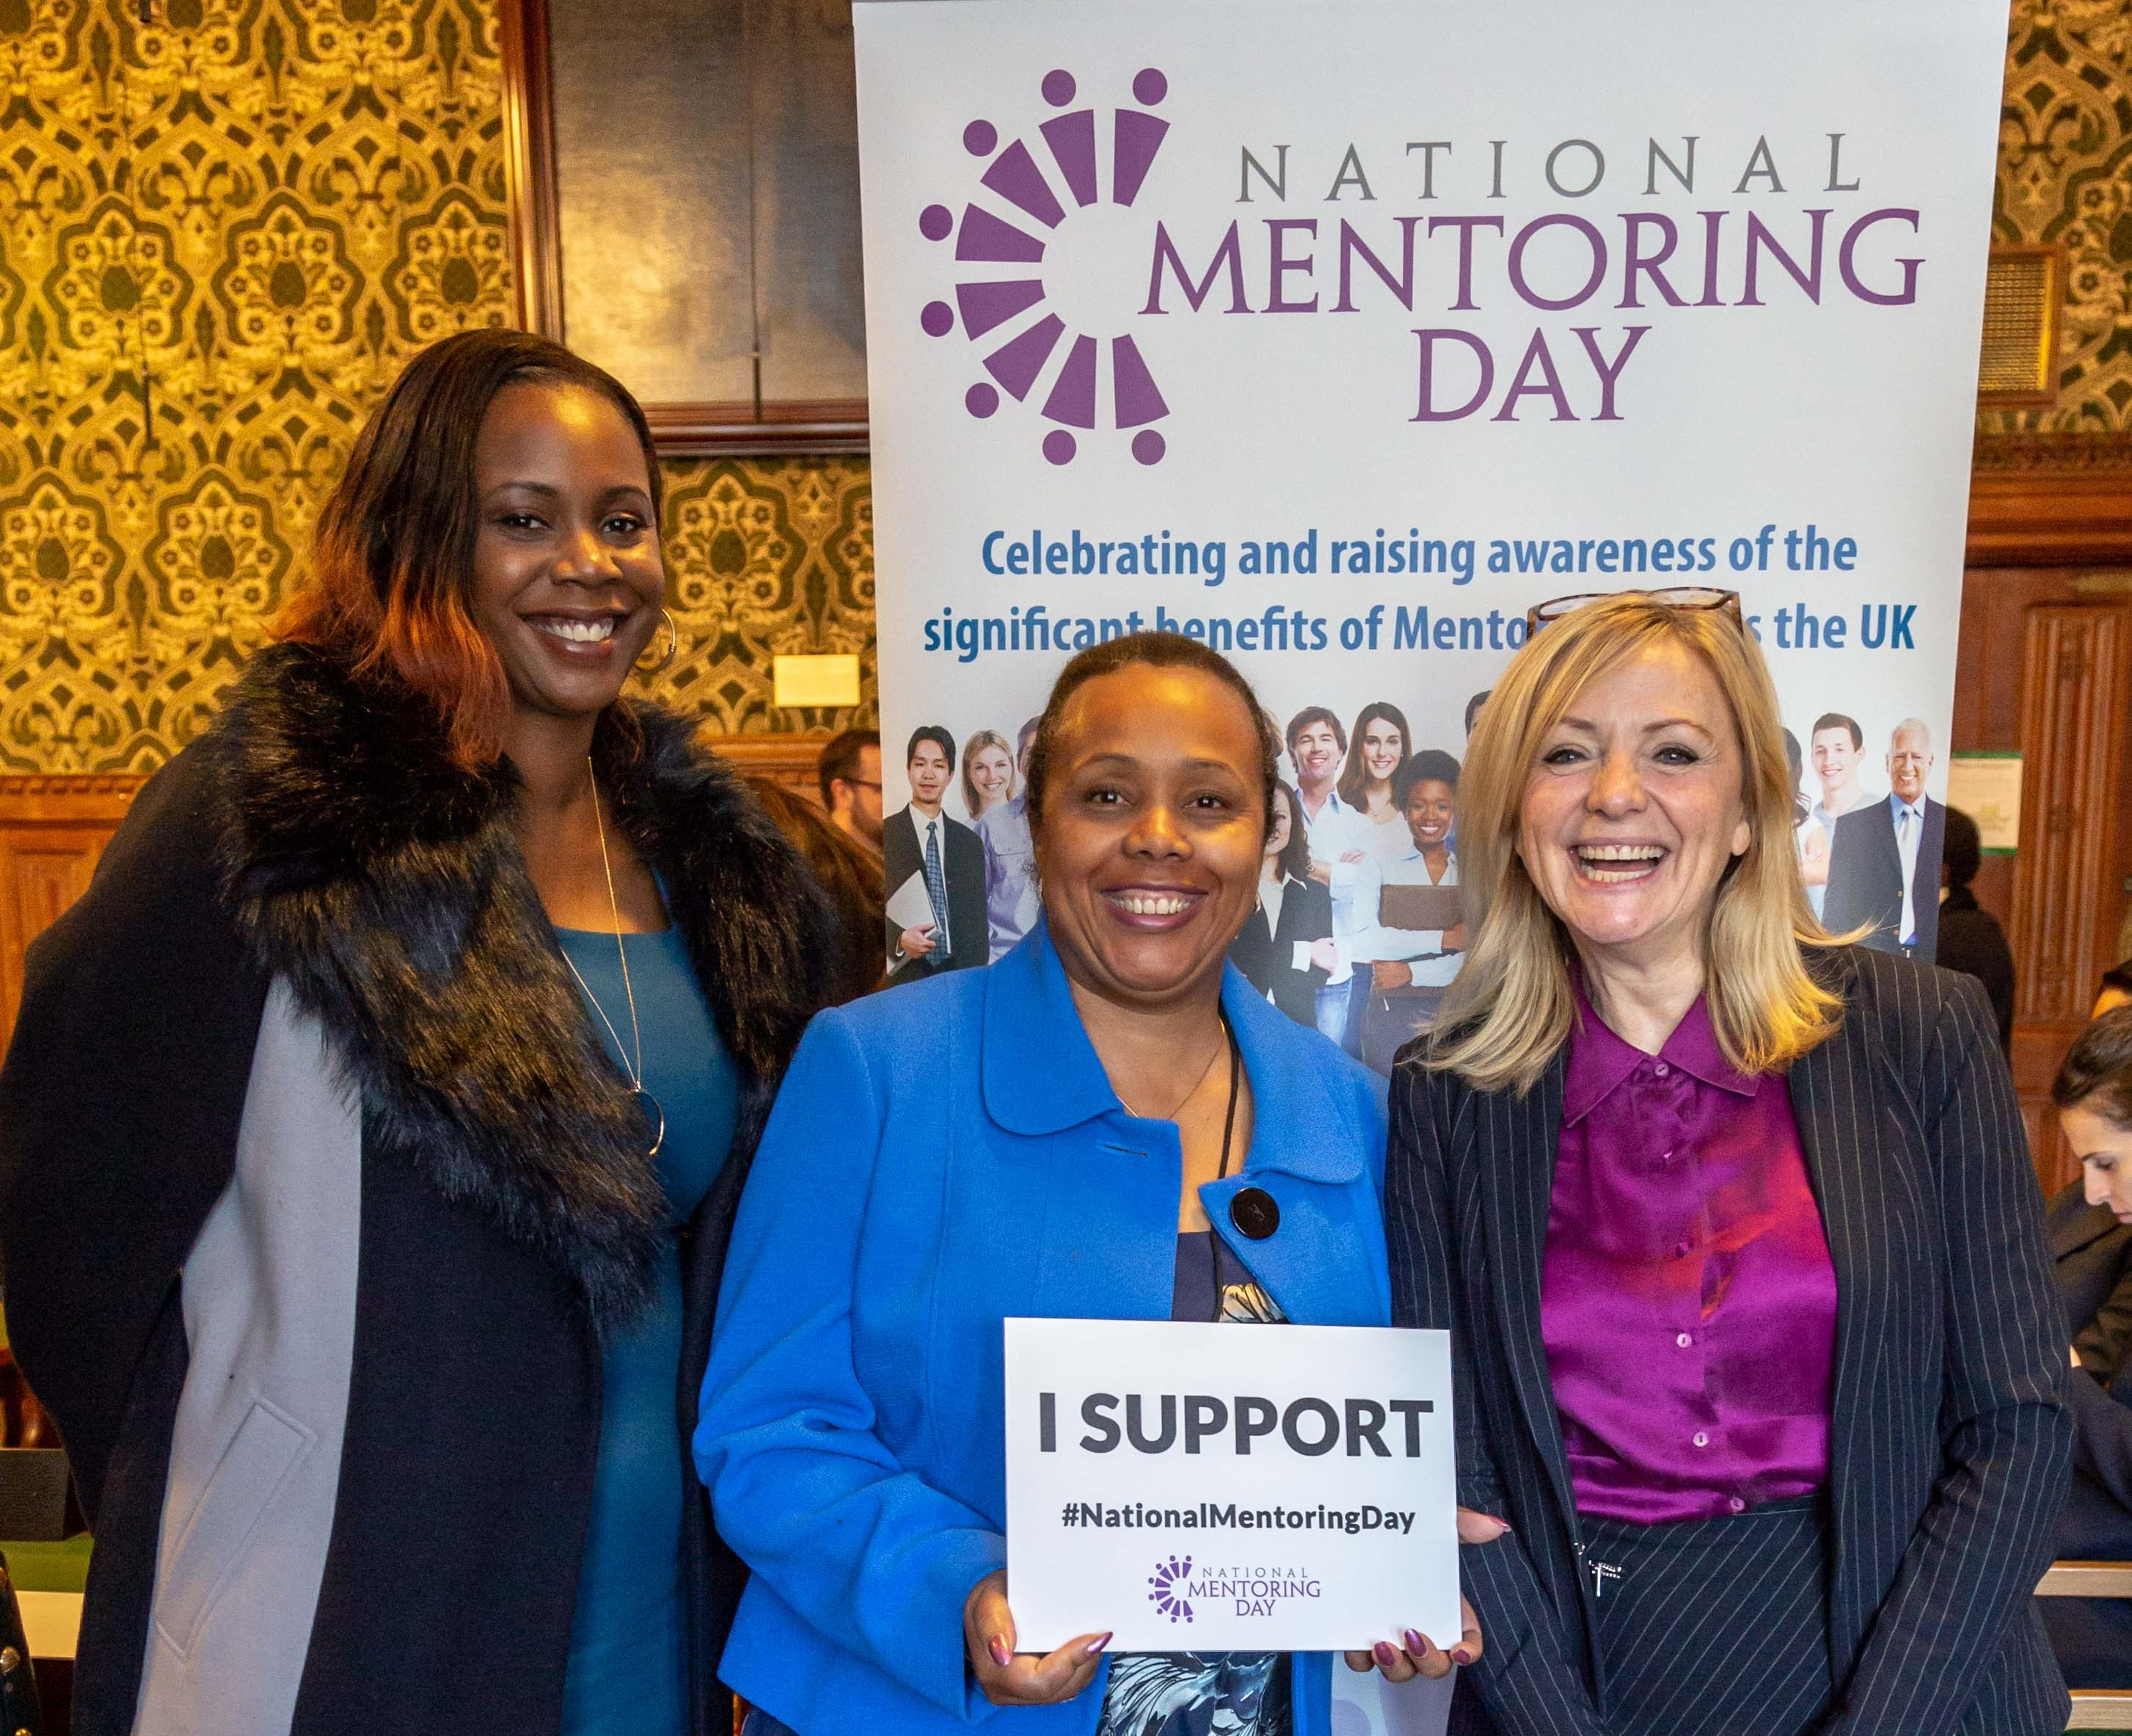 National Mentoring Day